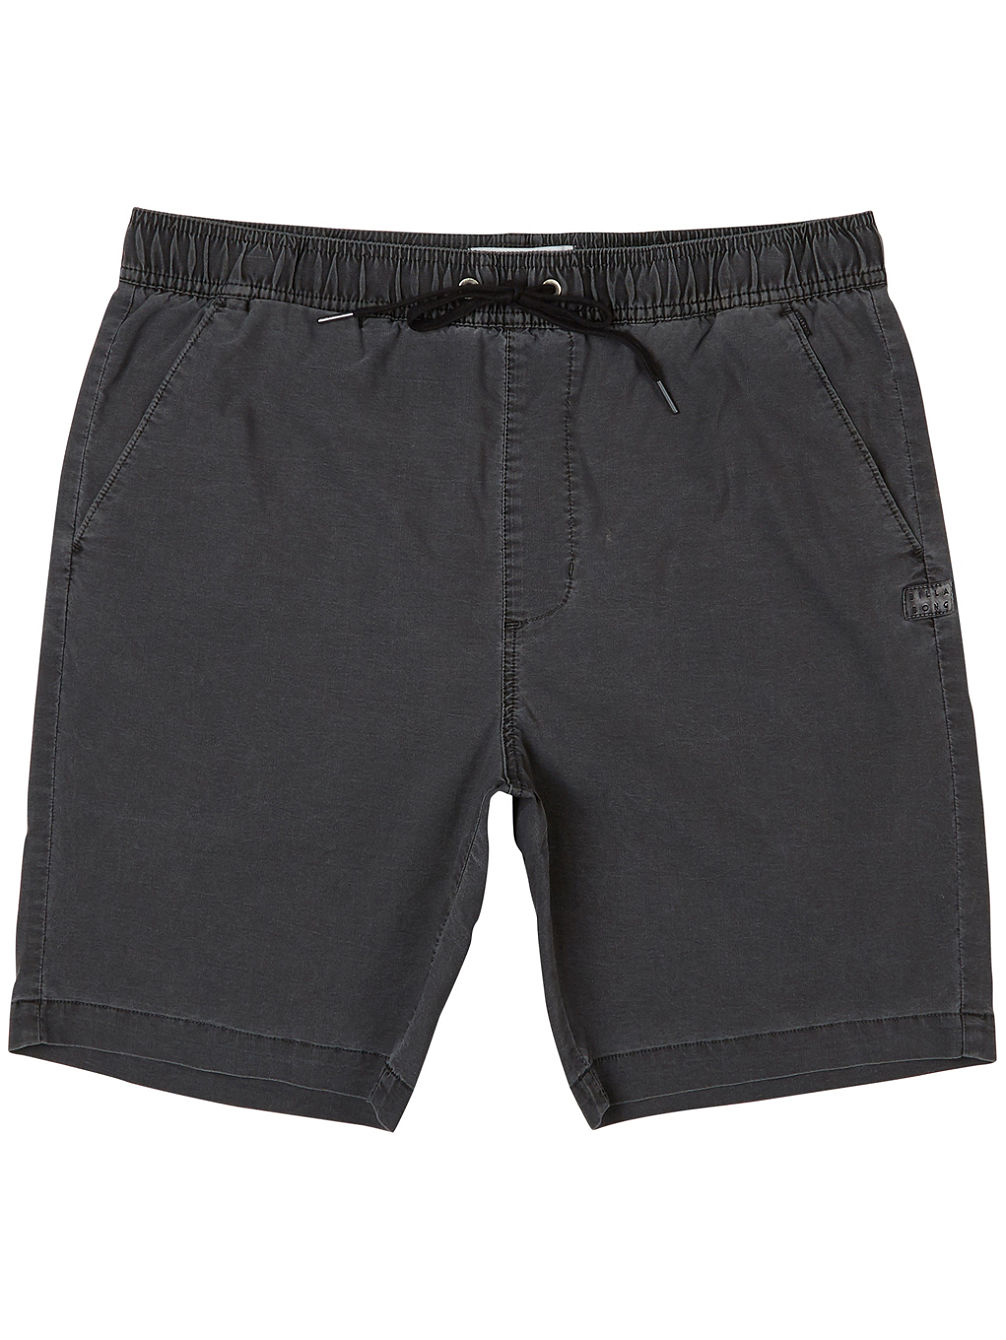 Larry Layback Ovd Shorts